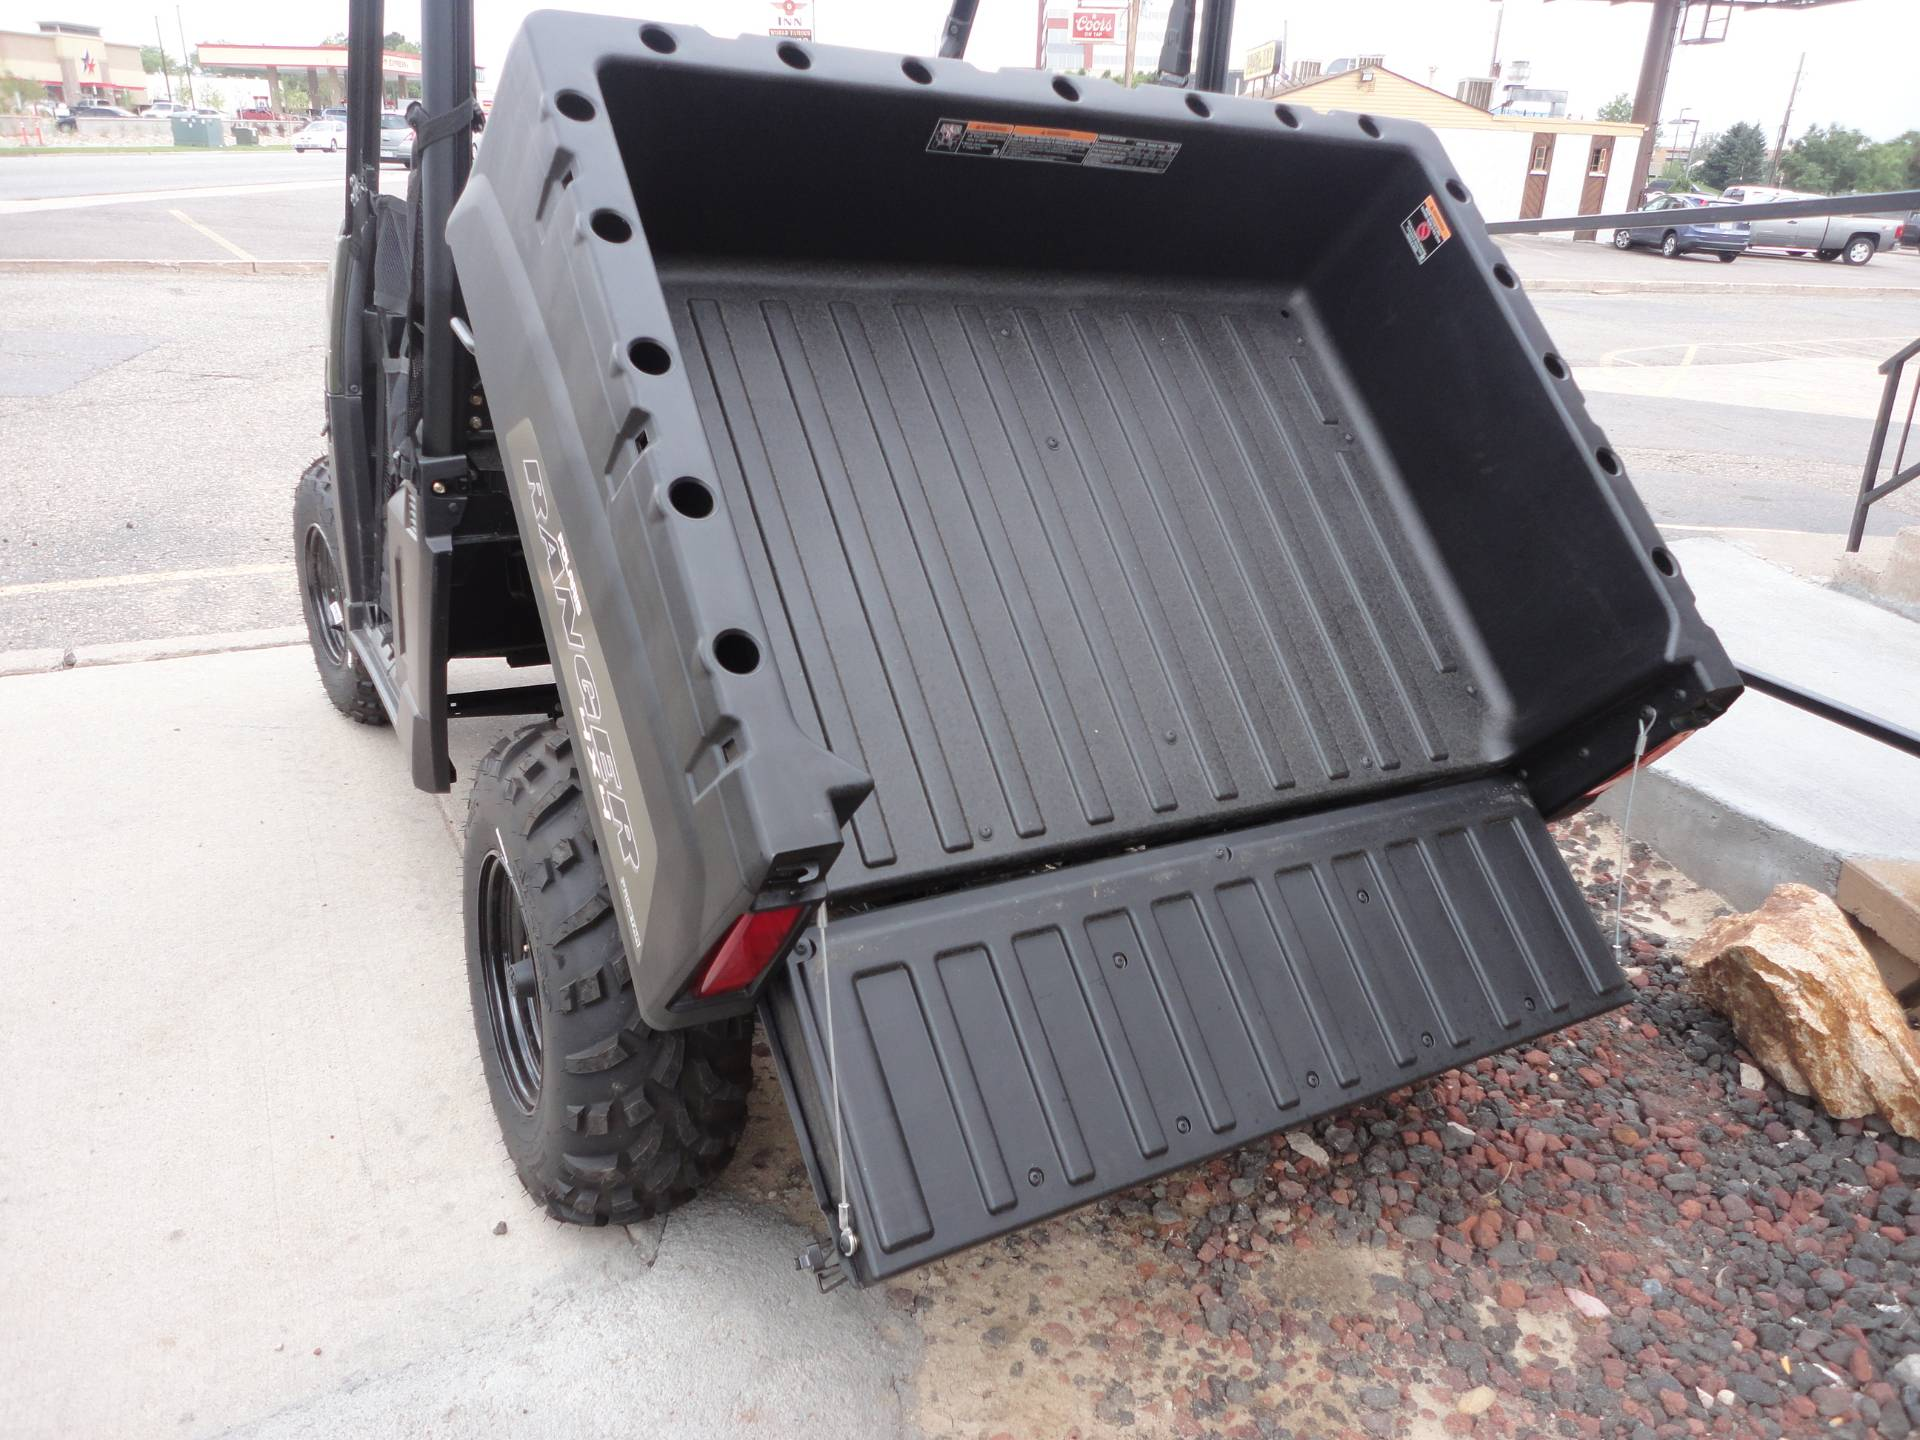 2019 Polaris Ranger 570 in Denver, Colorado